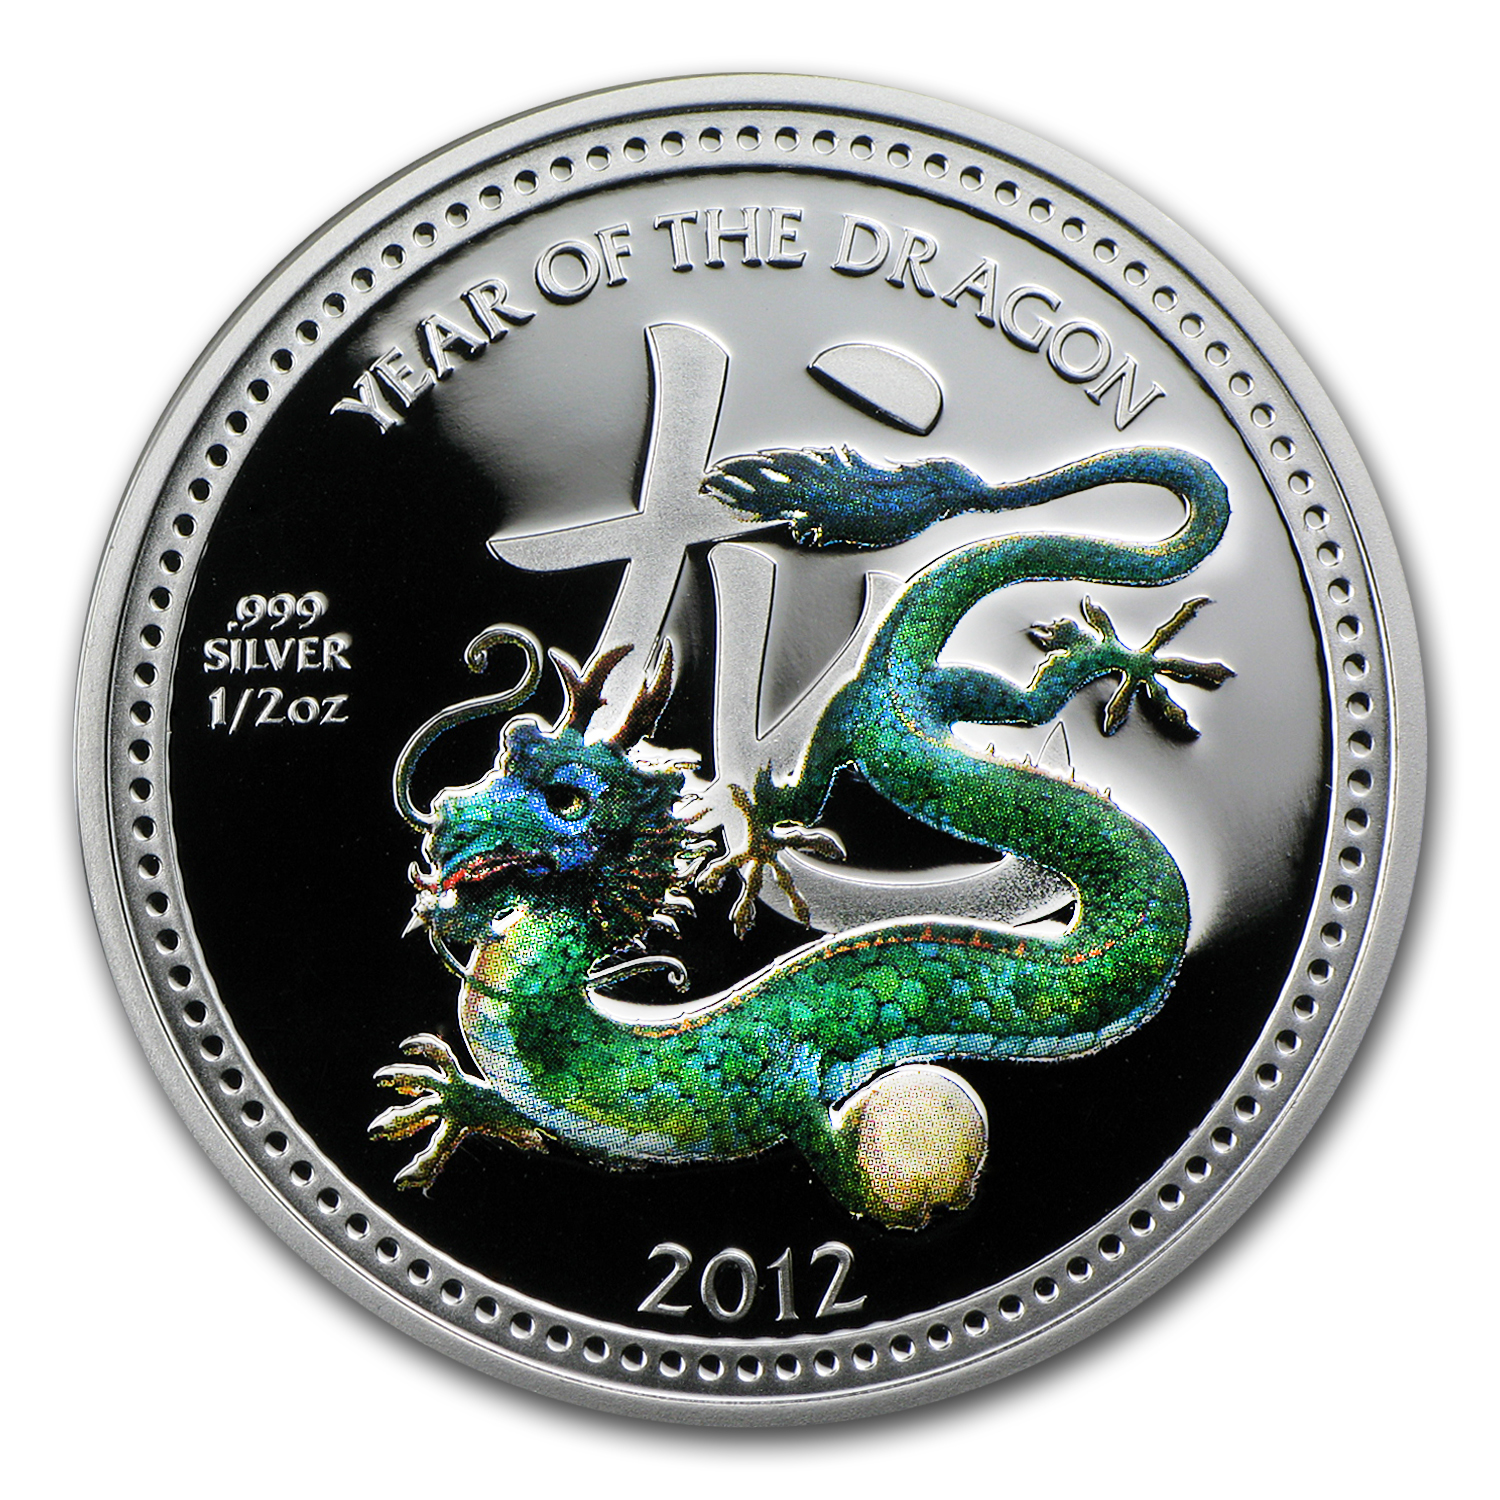 2012 Niue 1/2 oz Silver $2 Pearl Dragon (w/Dragons Egg Case)